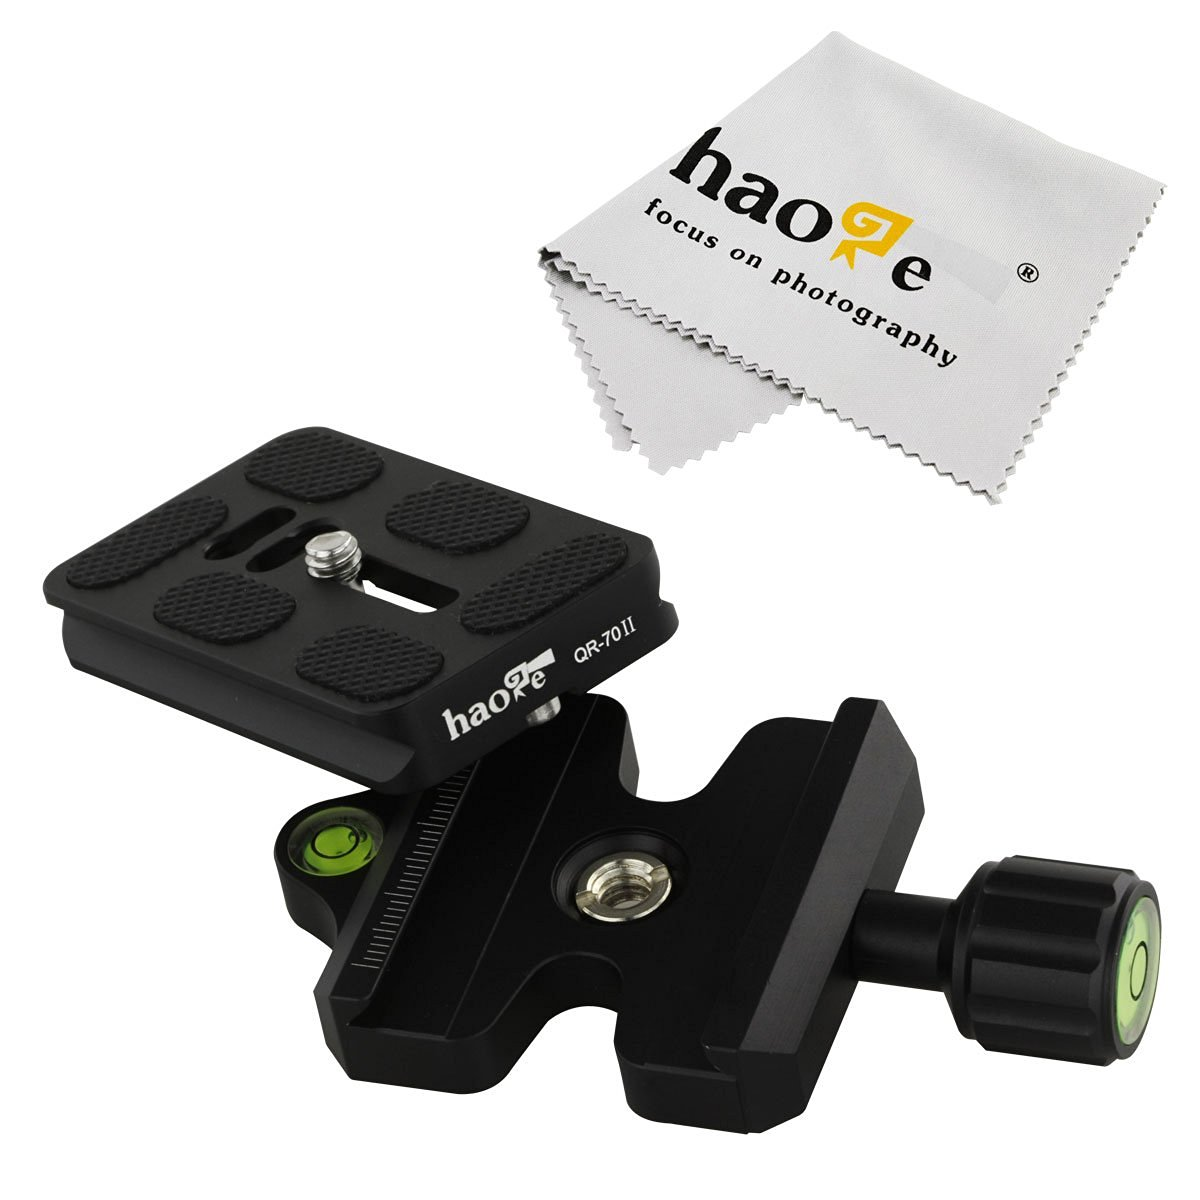 Haoge CP-50II 50mm QR Quick Release Clamp Adapter with QR-70II 70mm Plate for Camera Tripod Monopod Ball Head Compatible with Arca-Swiss Standard